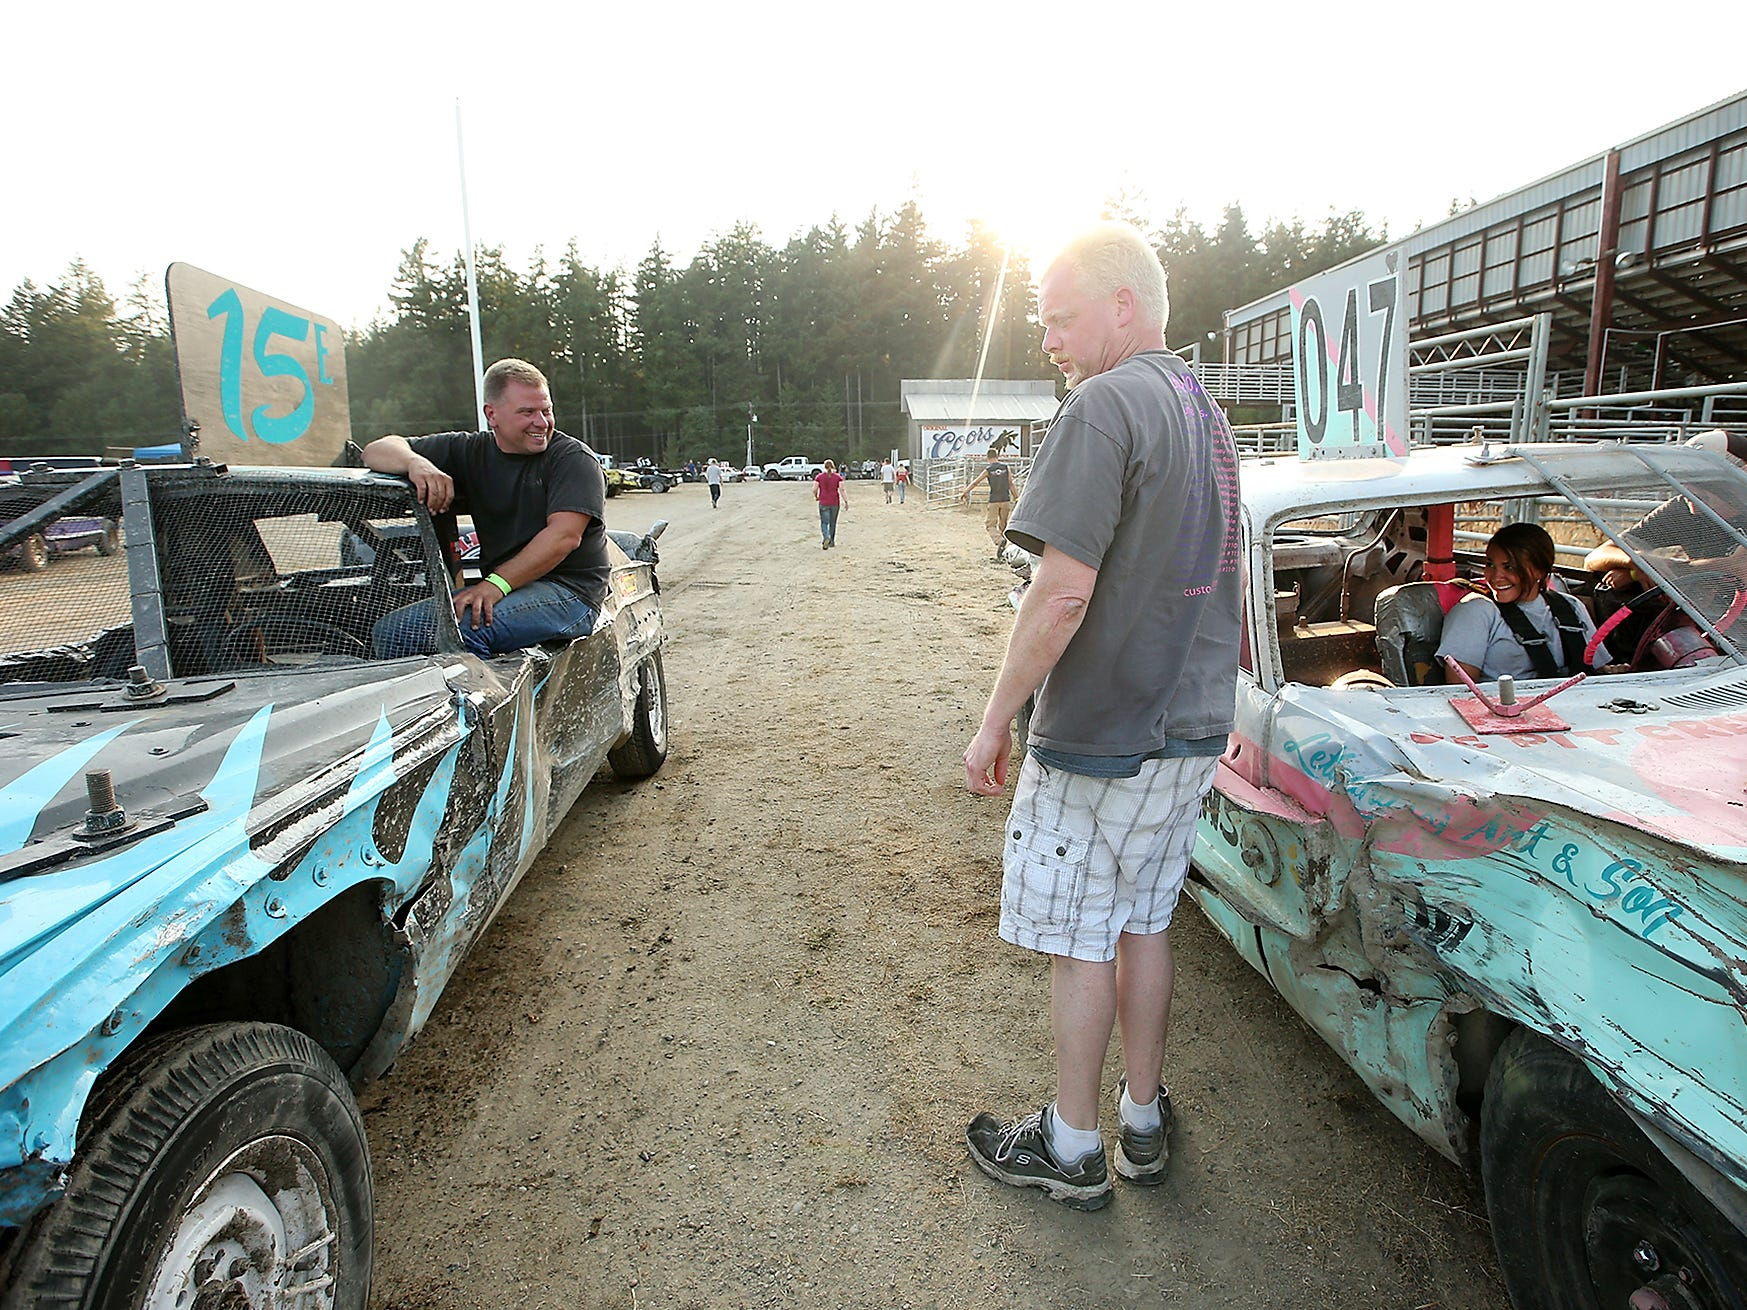 Drivers Dan Pieze (left) and Rachelle Ensor (right) talk between their cars as they line up and prepare for their next  race at the Kitsap County Fairgrounds on Saturday, July 28, 2018.